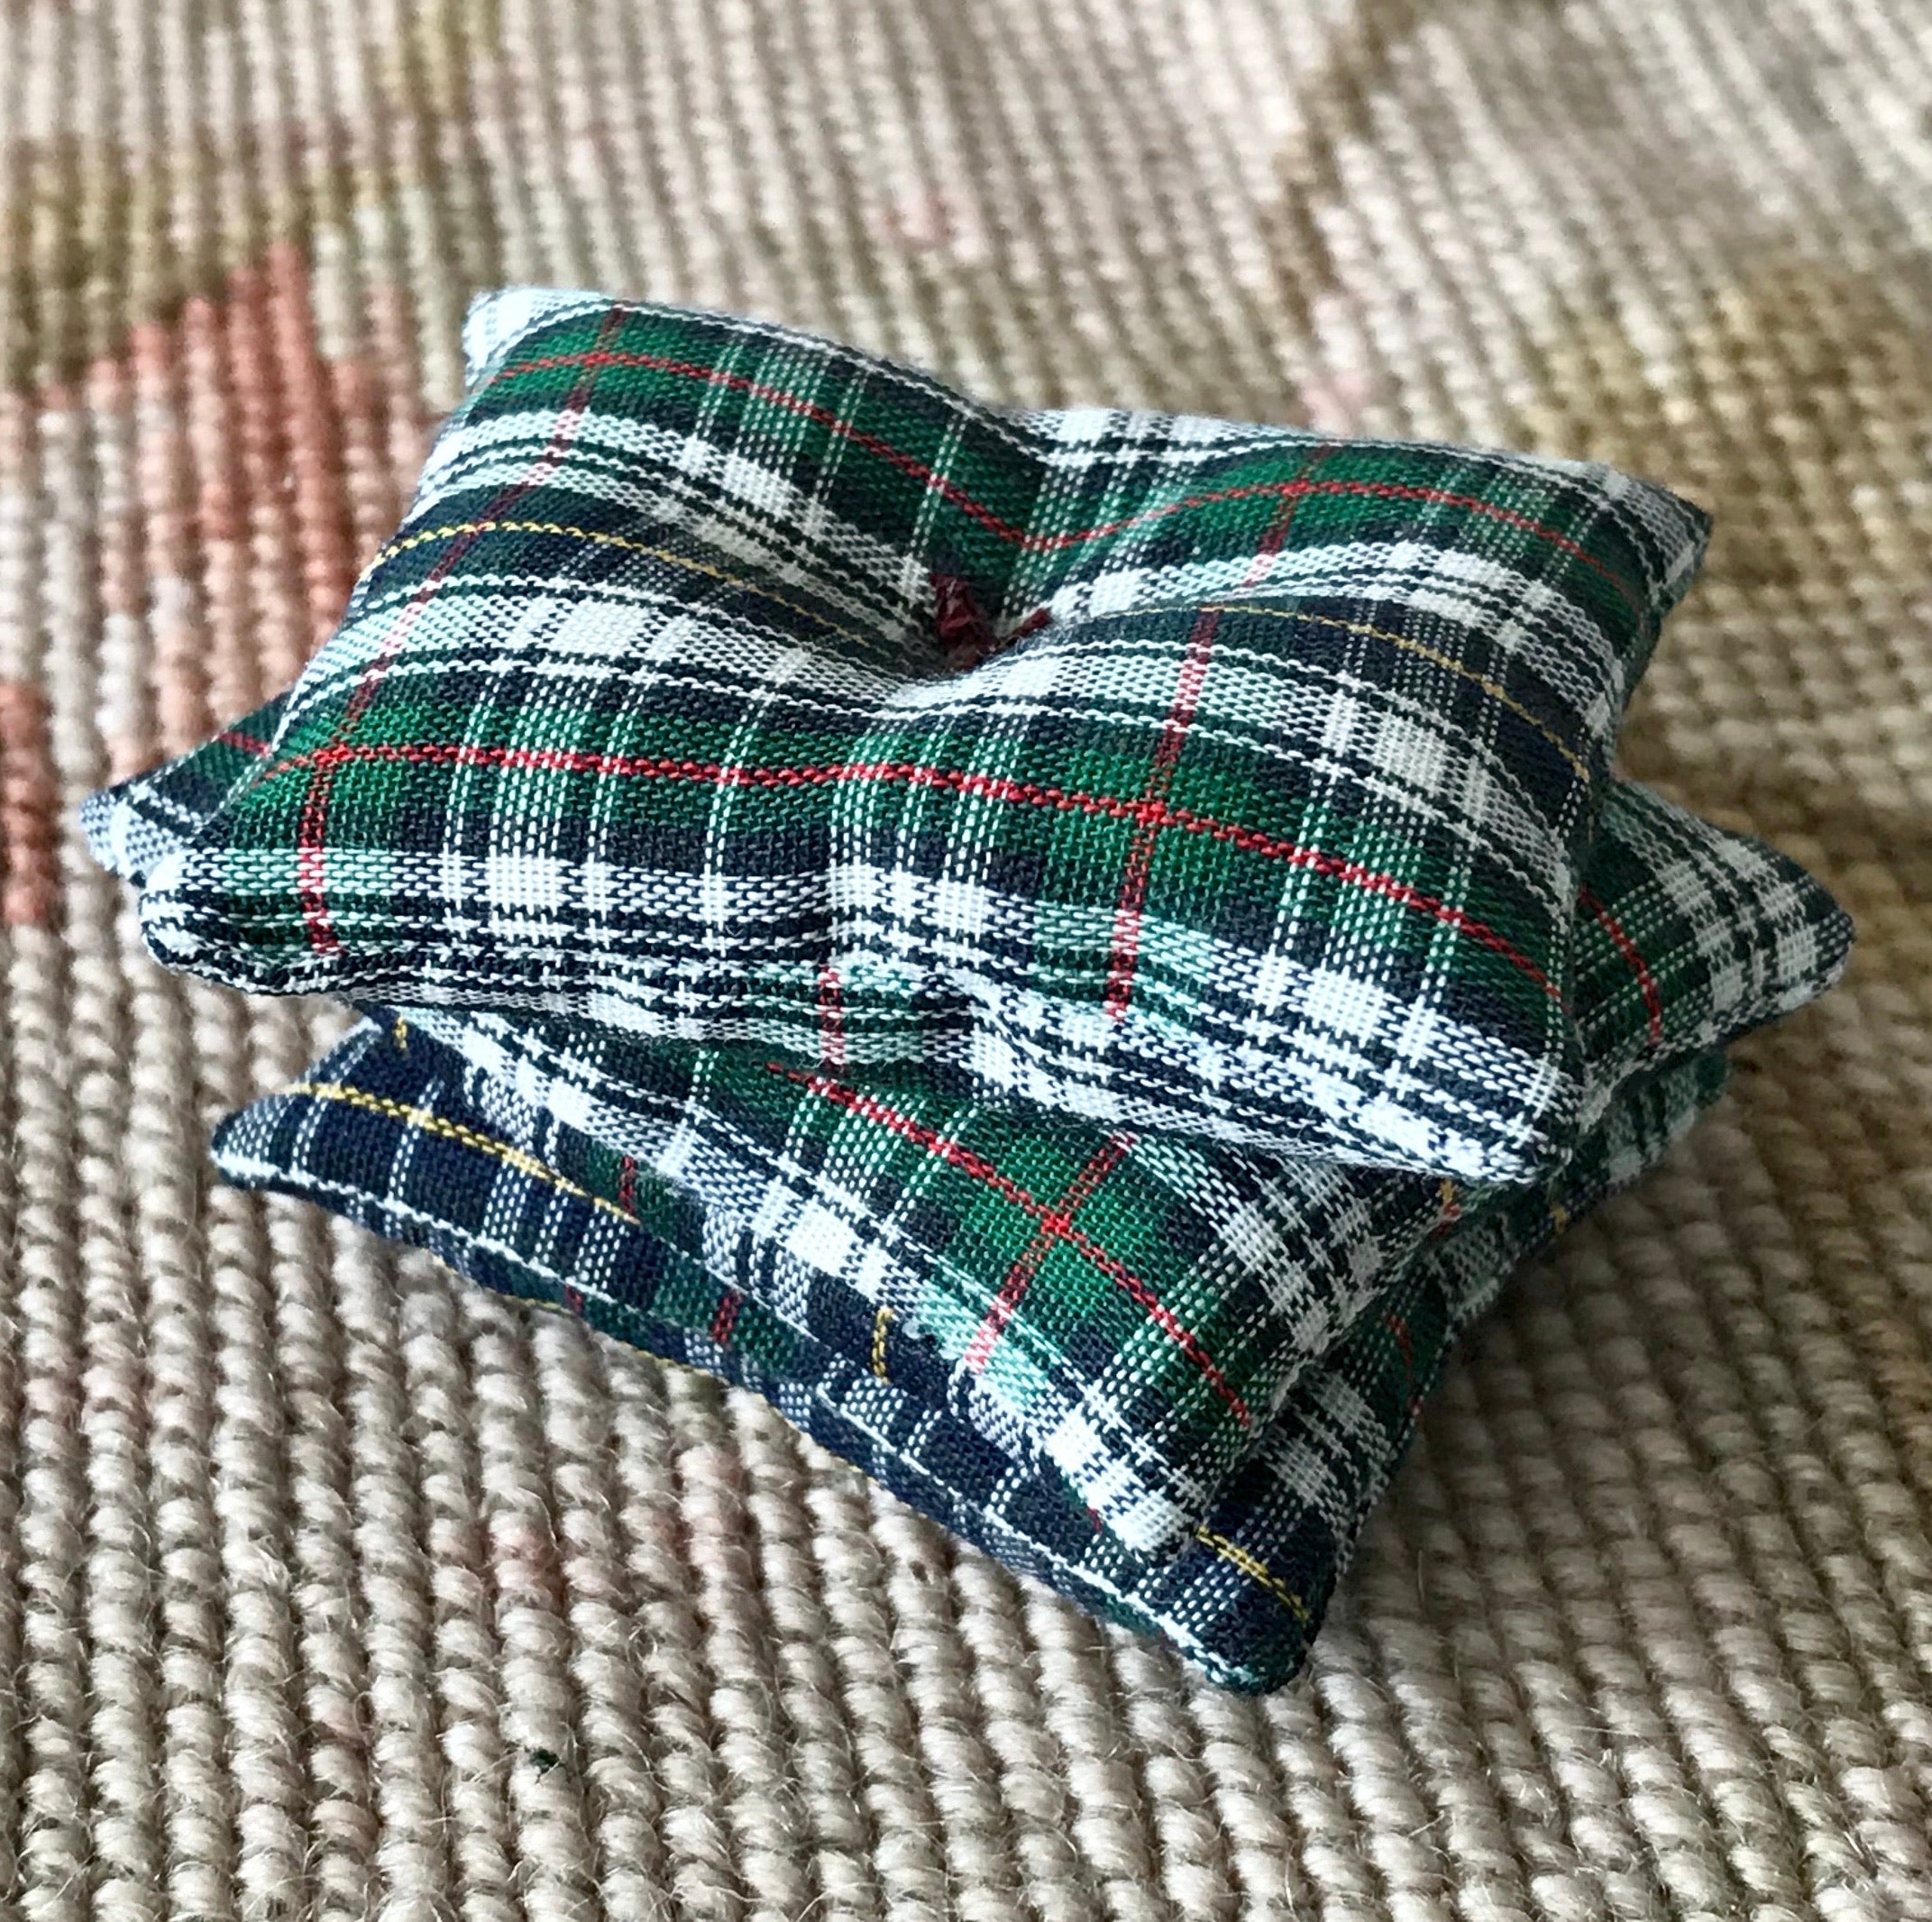 Pillow Stack Cushion Plaid 1:12 Dollhouse Miniature